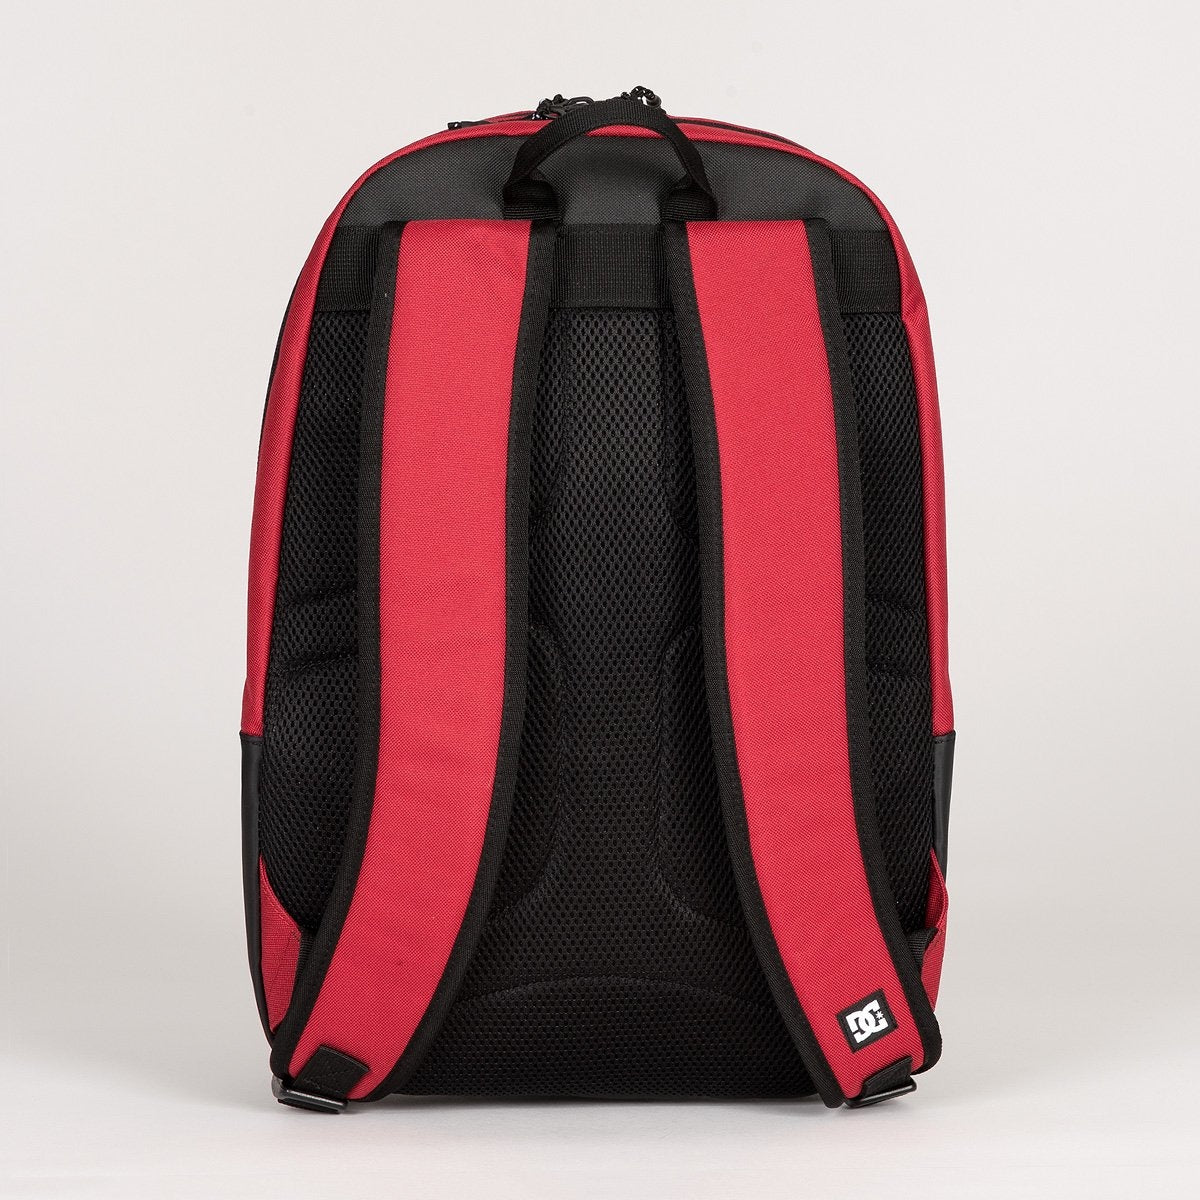 DC Punchyard 22L Backpack Rio Red - Accessories